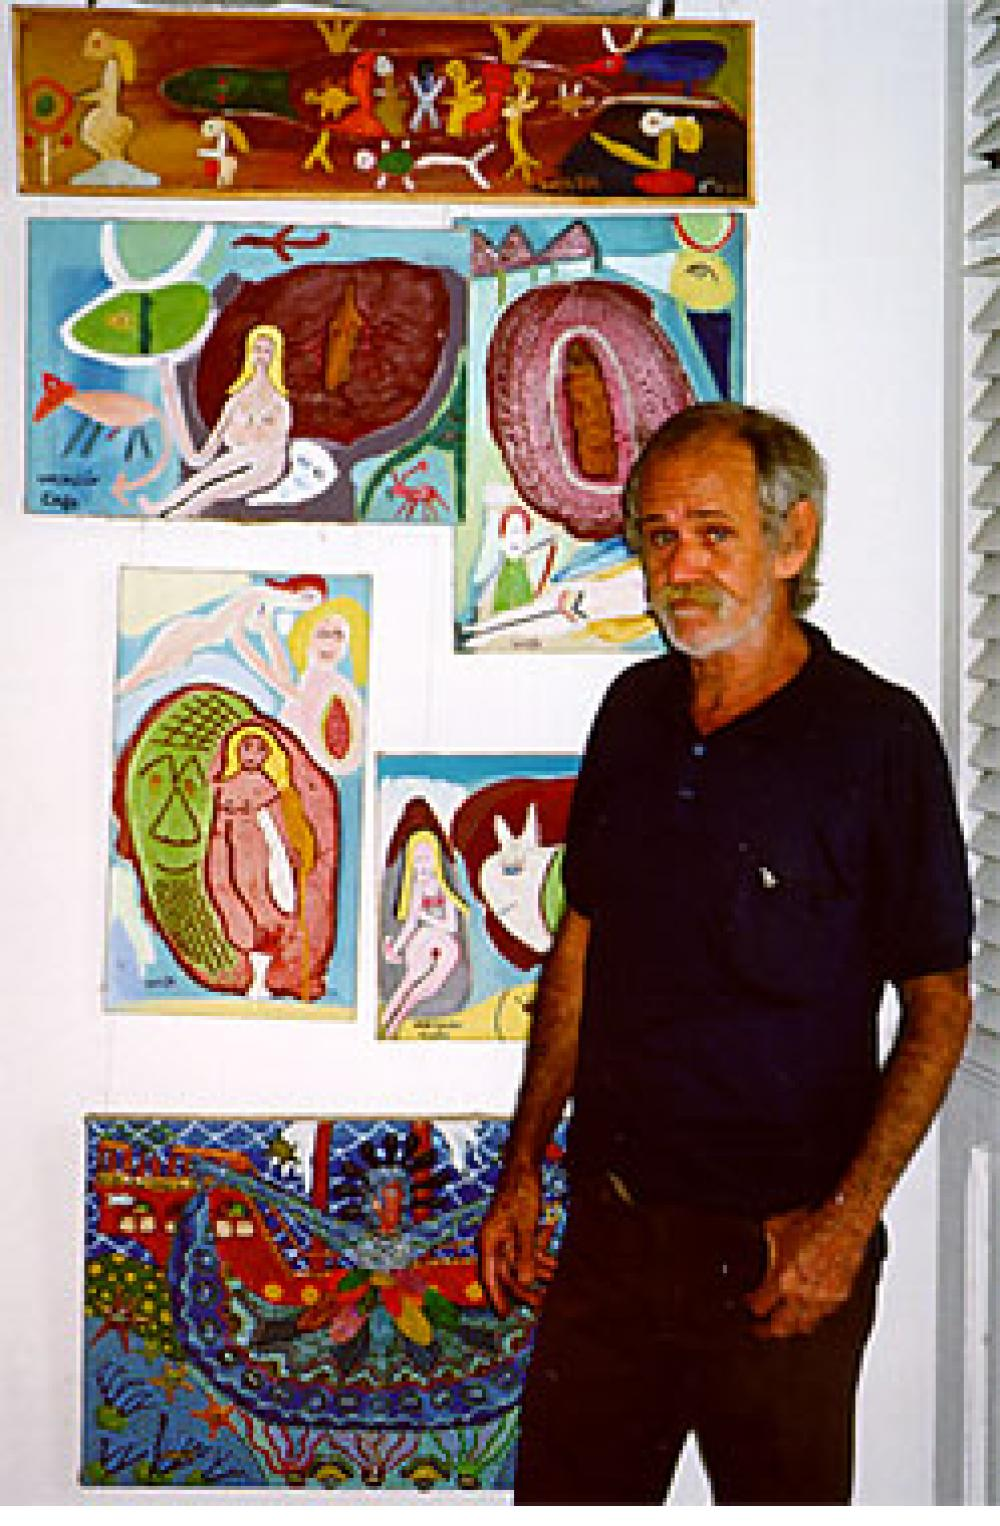 Wayacon (Julian Espinosa) with some of his paintings. Cienfuegos, Cuba, 2000.